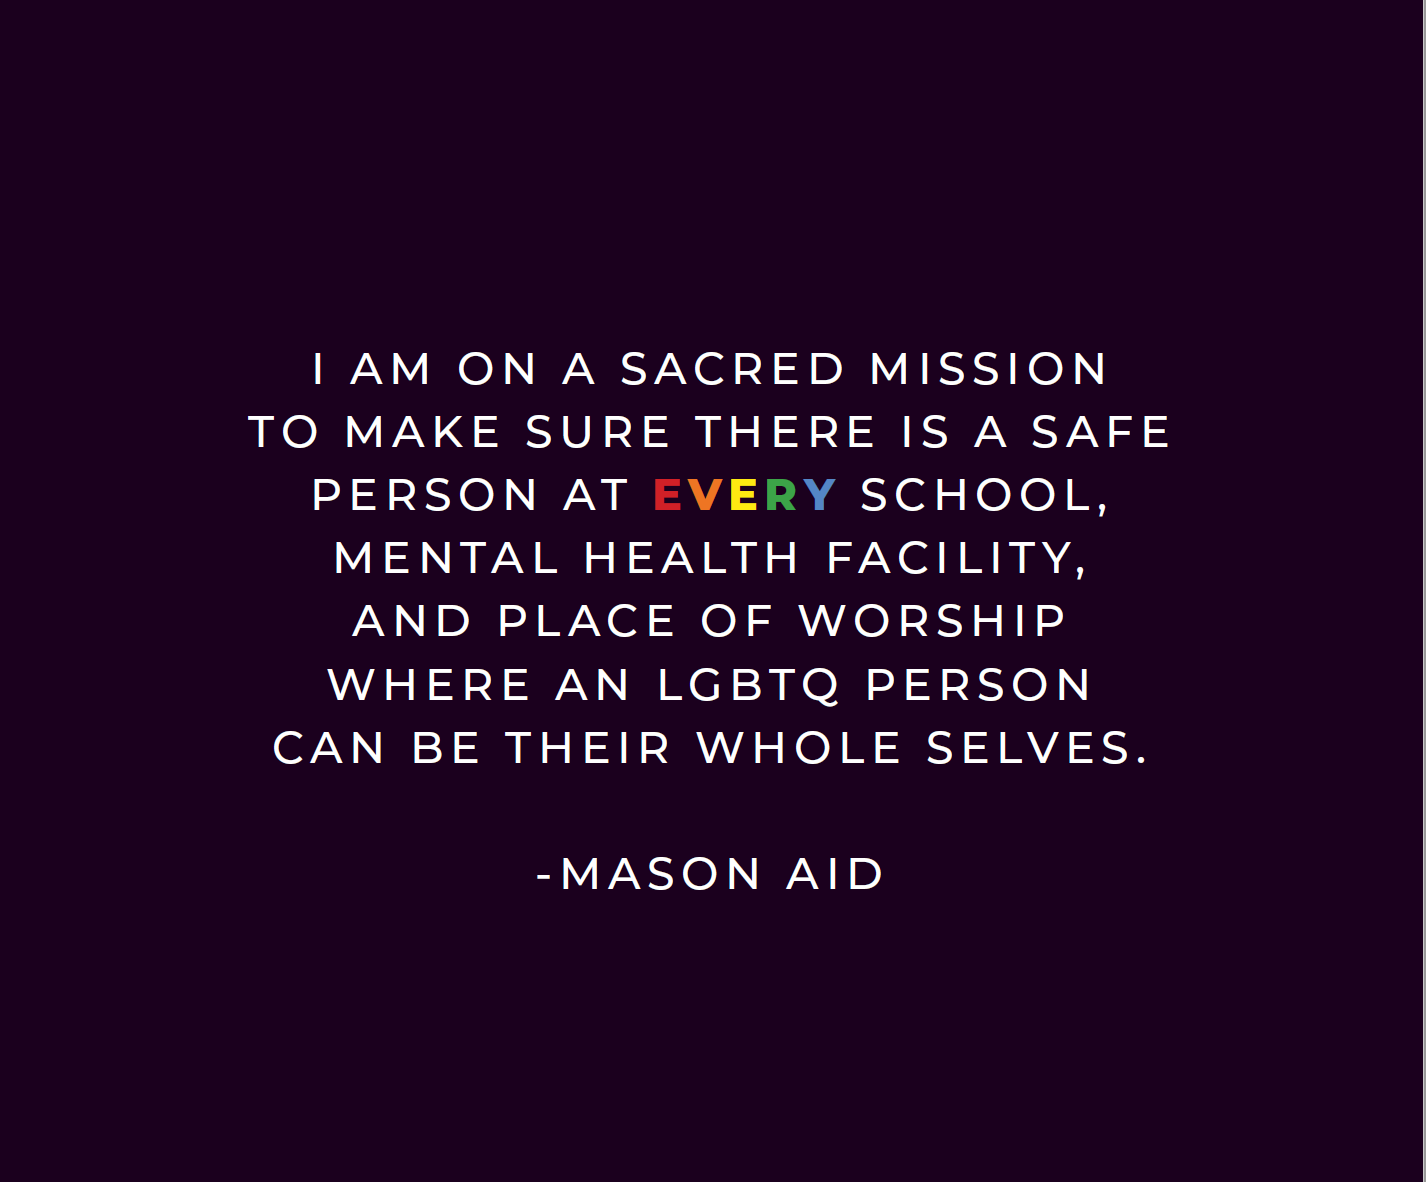 Mason Aid - Mission Statement Graphic by Beauty Bright Design.PNG